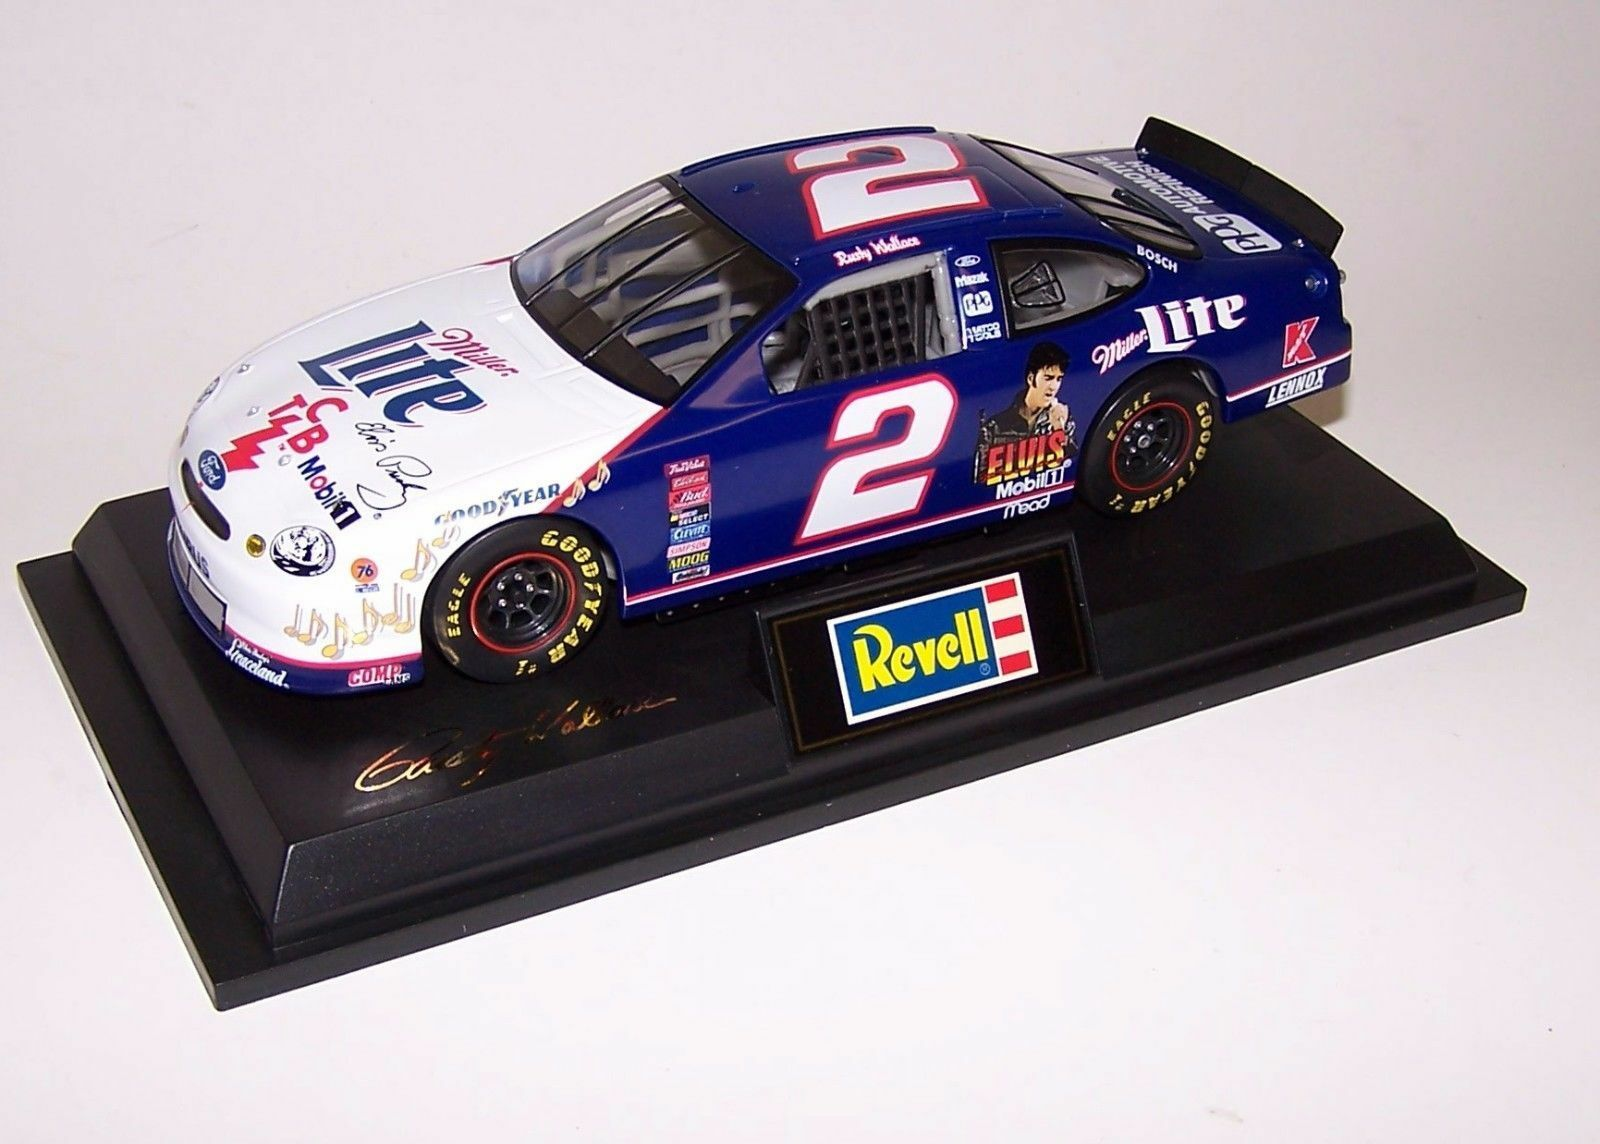 1 1 1 43 Revell Rusty Wallace 1998 Ford Taurus Miller Lite RC439801025-2 NEW e0fc0f